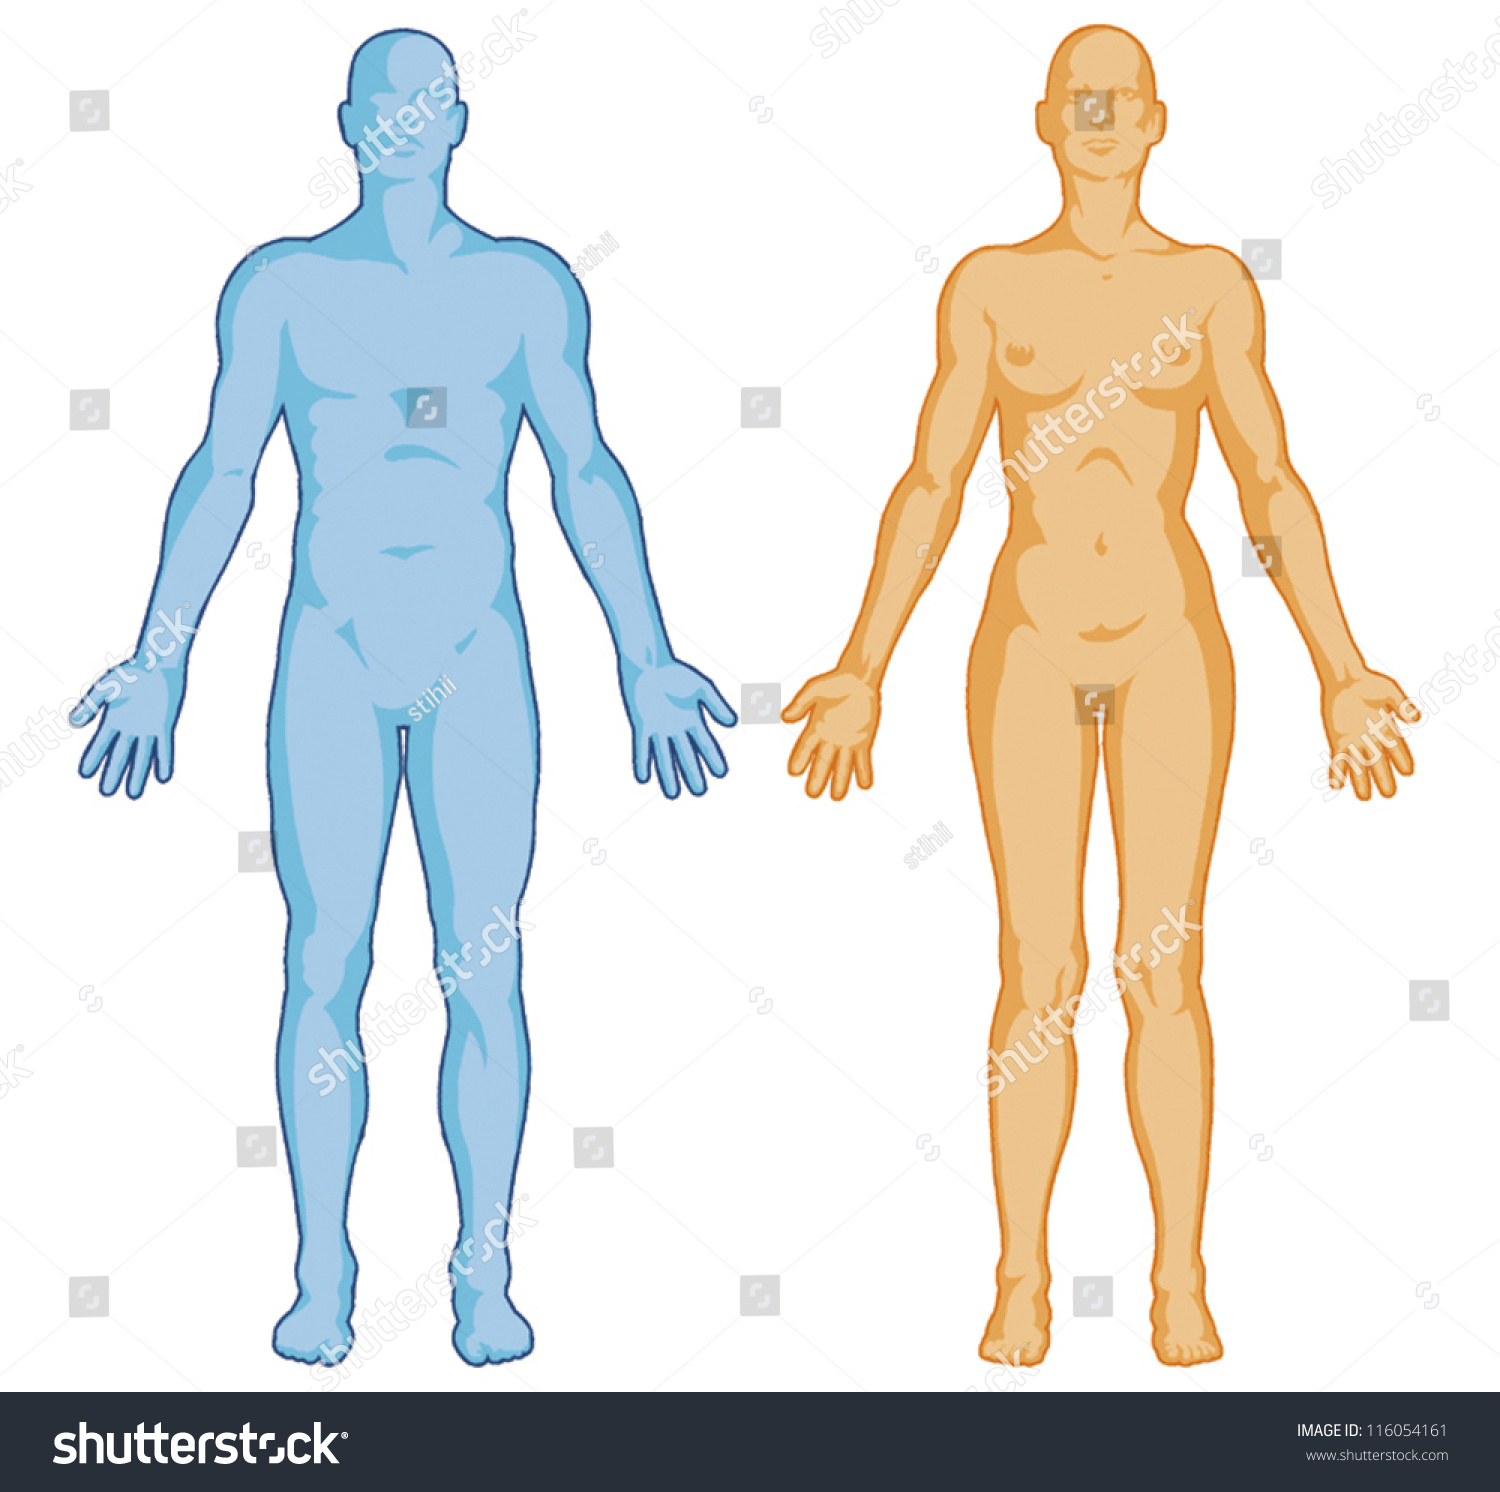 Female Male Body Shapes Human Body Stock Vector (Royalty Free ...